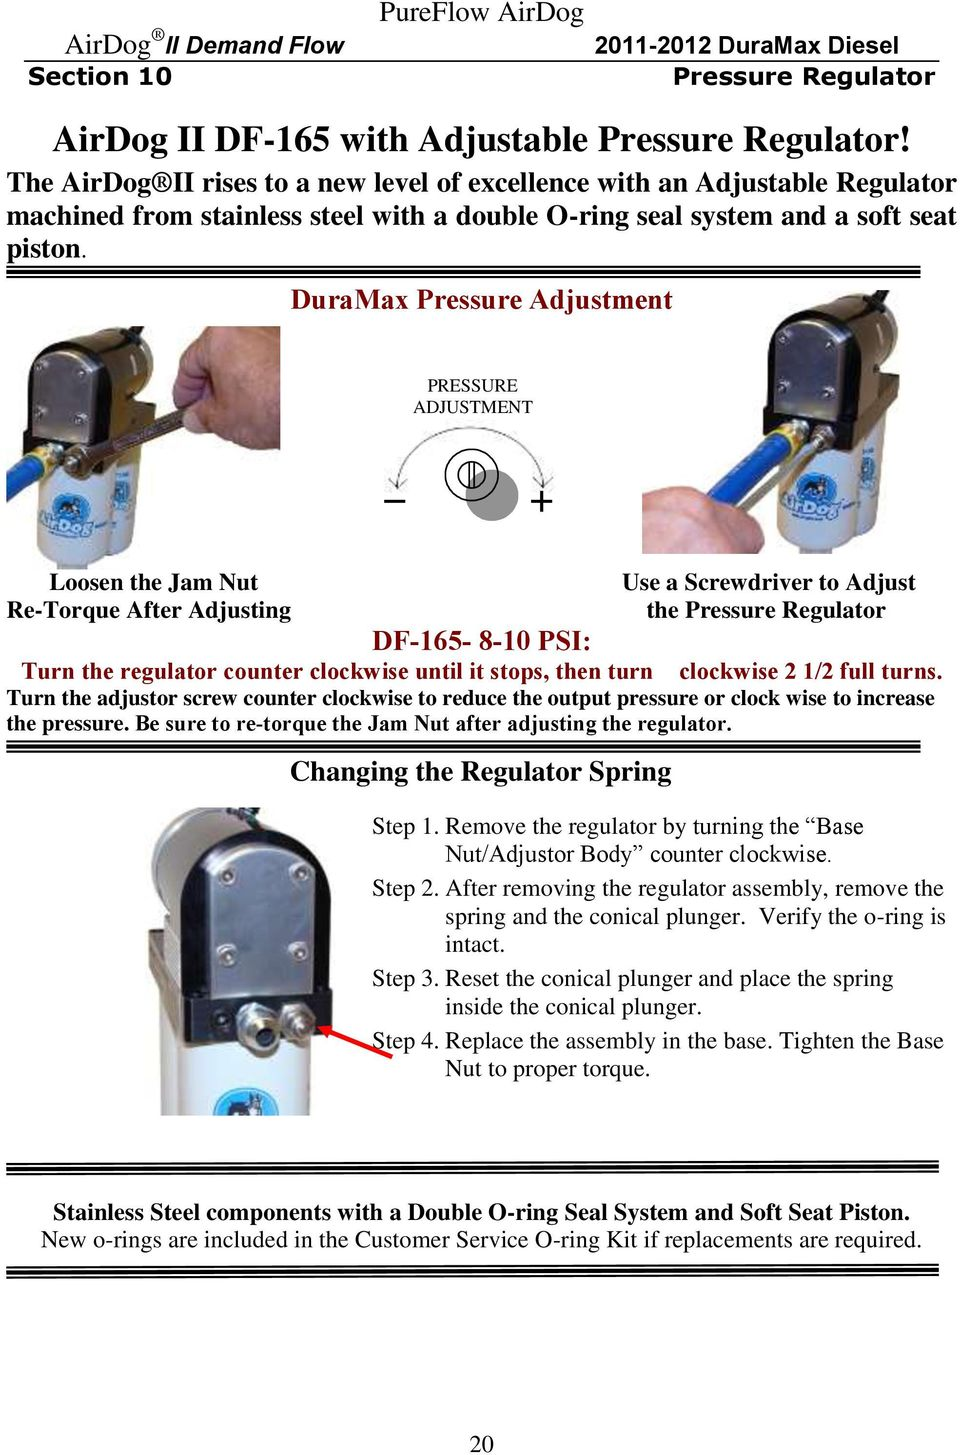 DuraMax Pressure Adjustment PRESSURE ADJUSTMENT Loosen the Jam Nut Use a Screwdriver to Adjust Re-Torque After Adjusting the Pressure Regulator DF-165-8-10 PSI: Turn the regulator counter clockwise